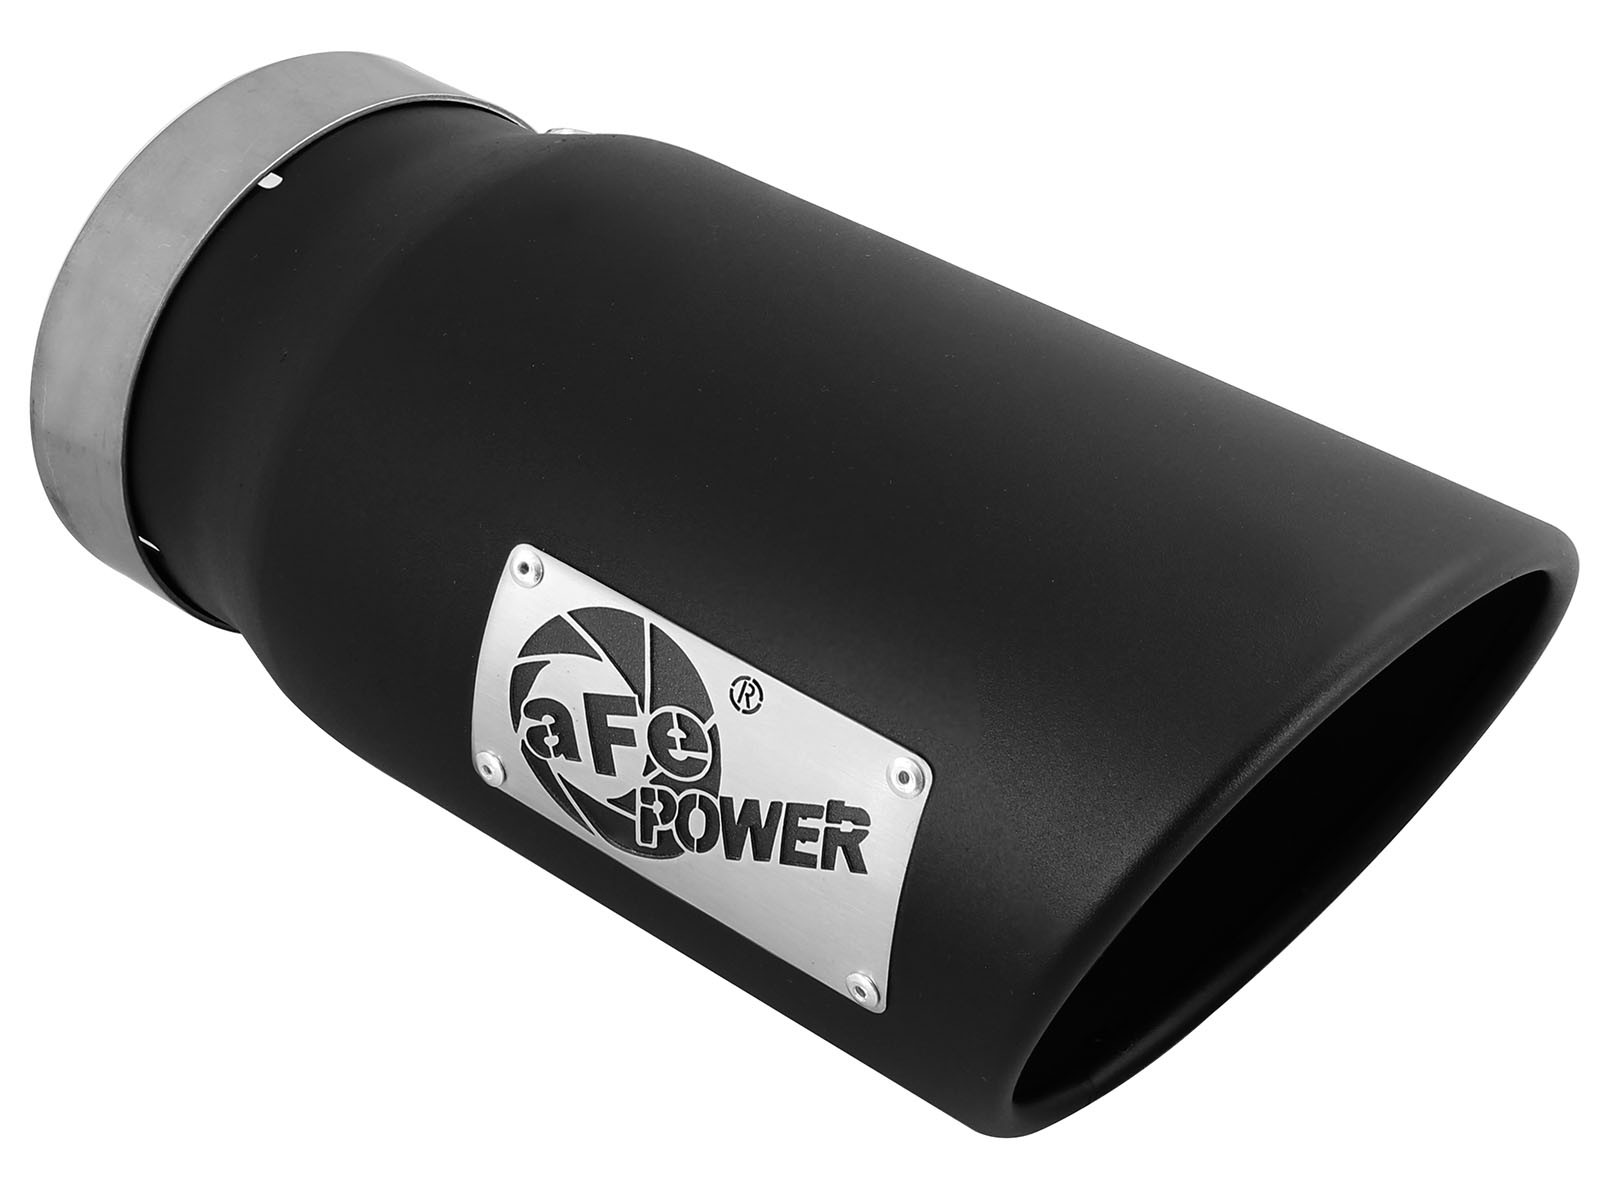 """aFe POWER 49T50601-B12 MACH Force-Xp 5"""" 304 Stainless Steel Exhaust Tip"""